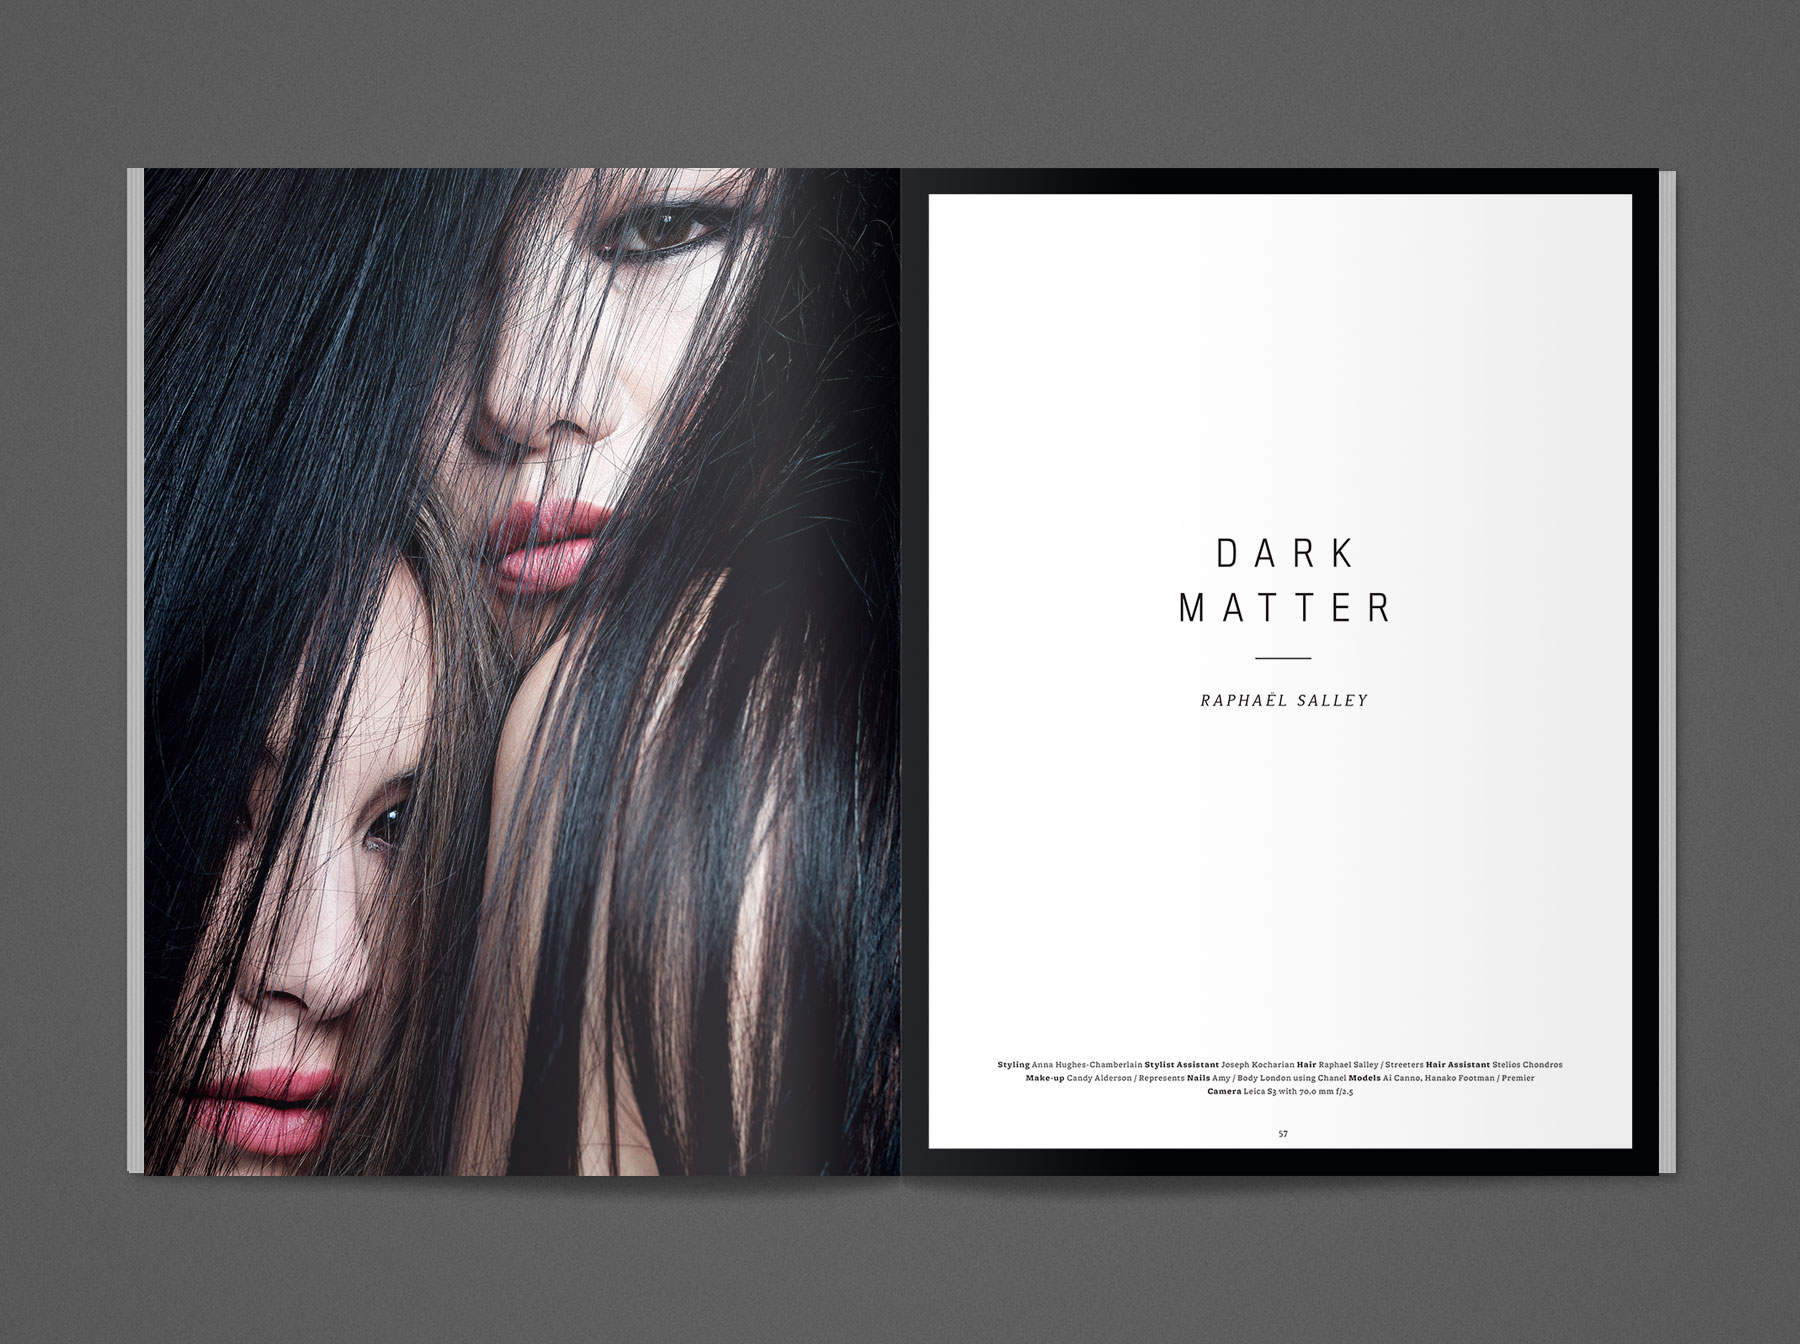 Rankin S magazine Evan Lelliott – Graphic Design